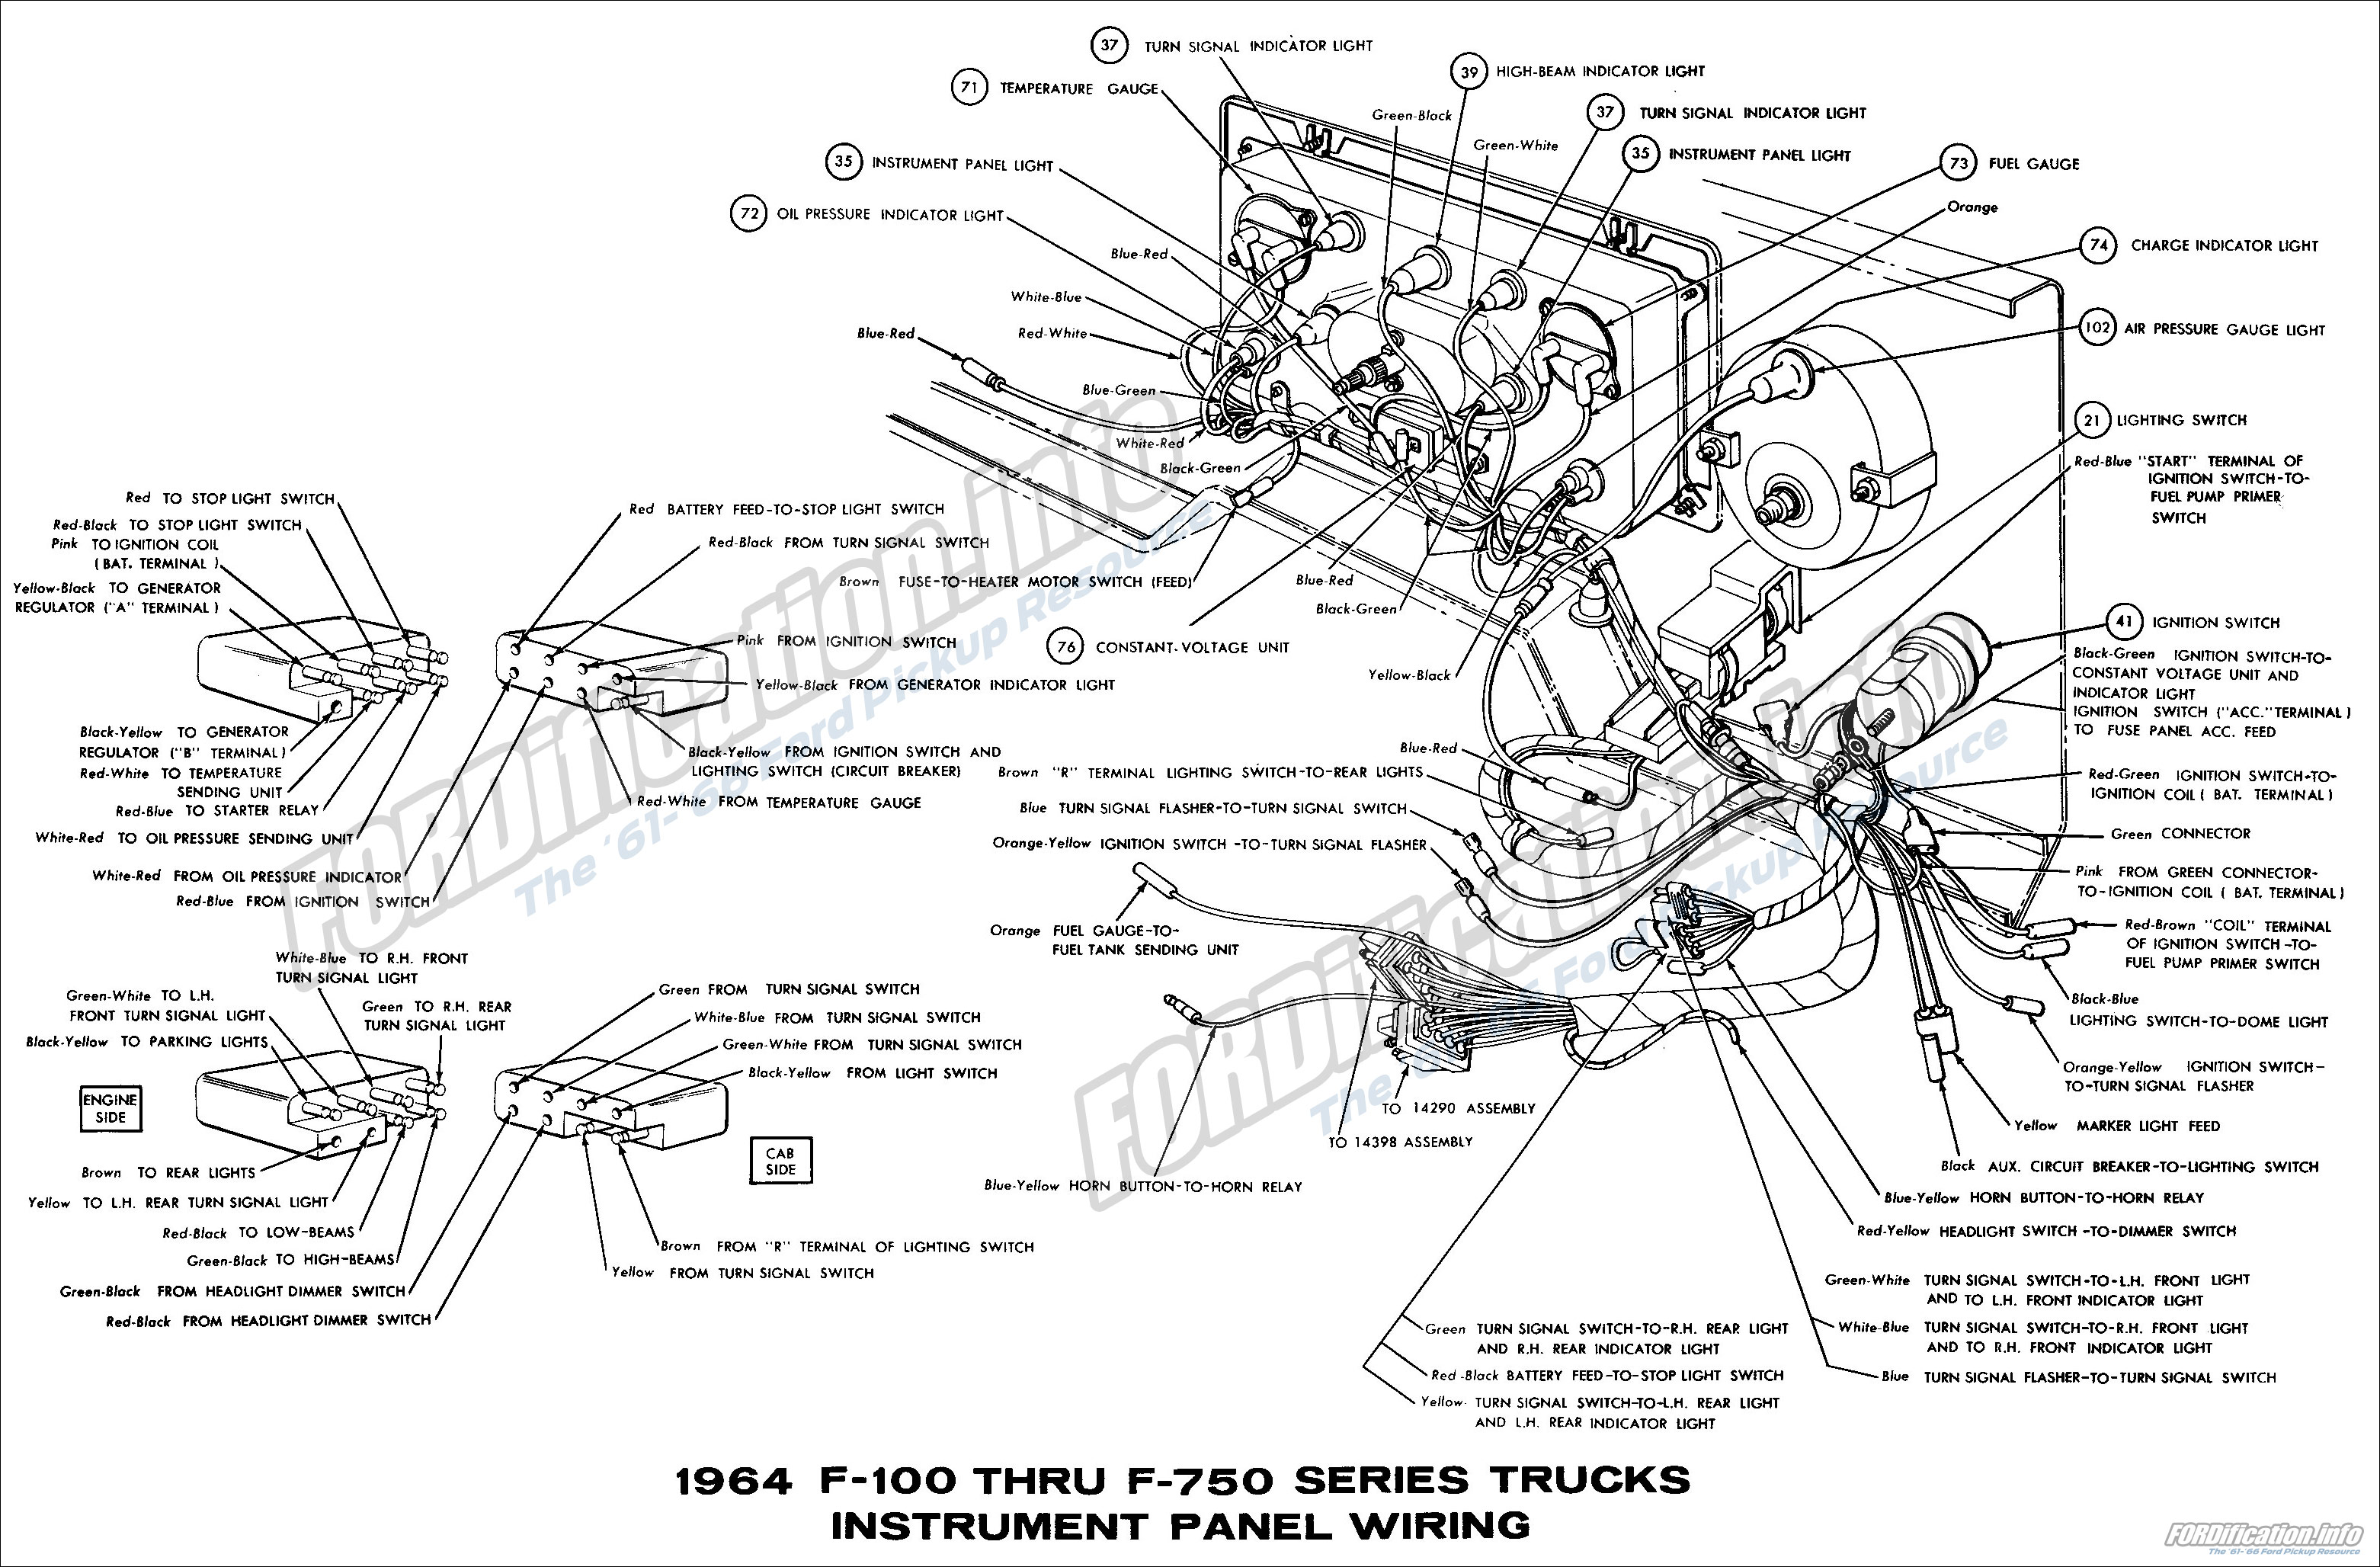 1940 ford dash light wiring diagram